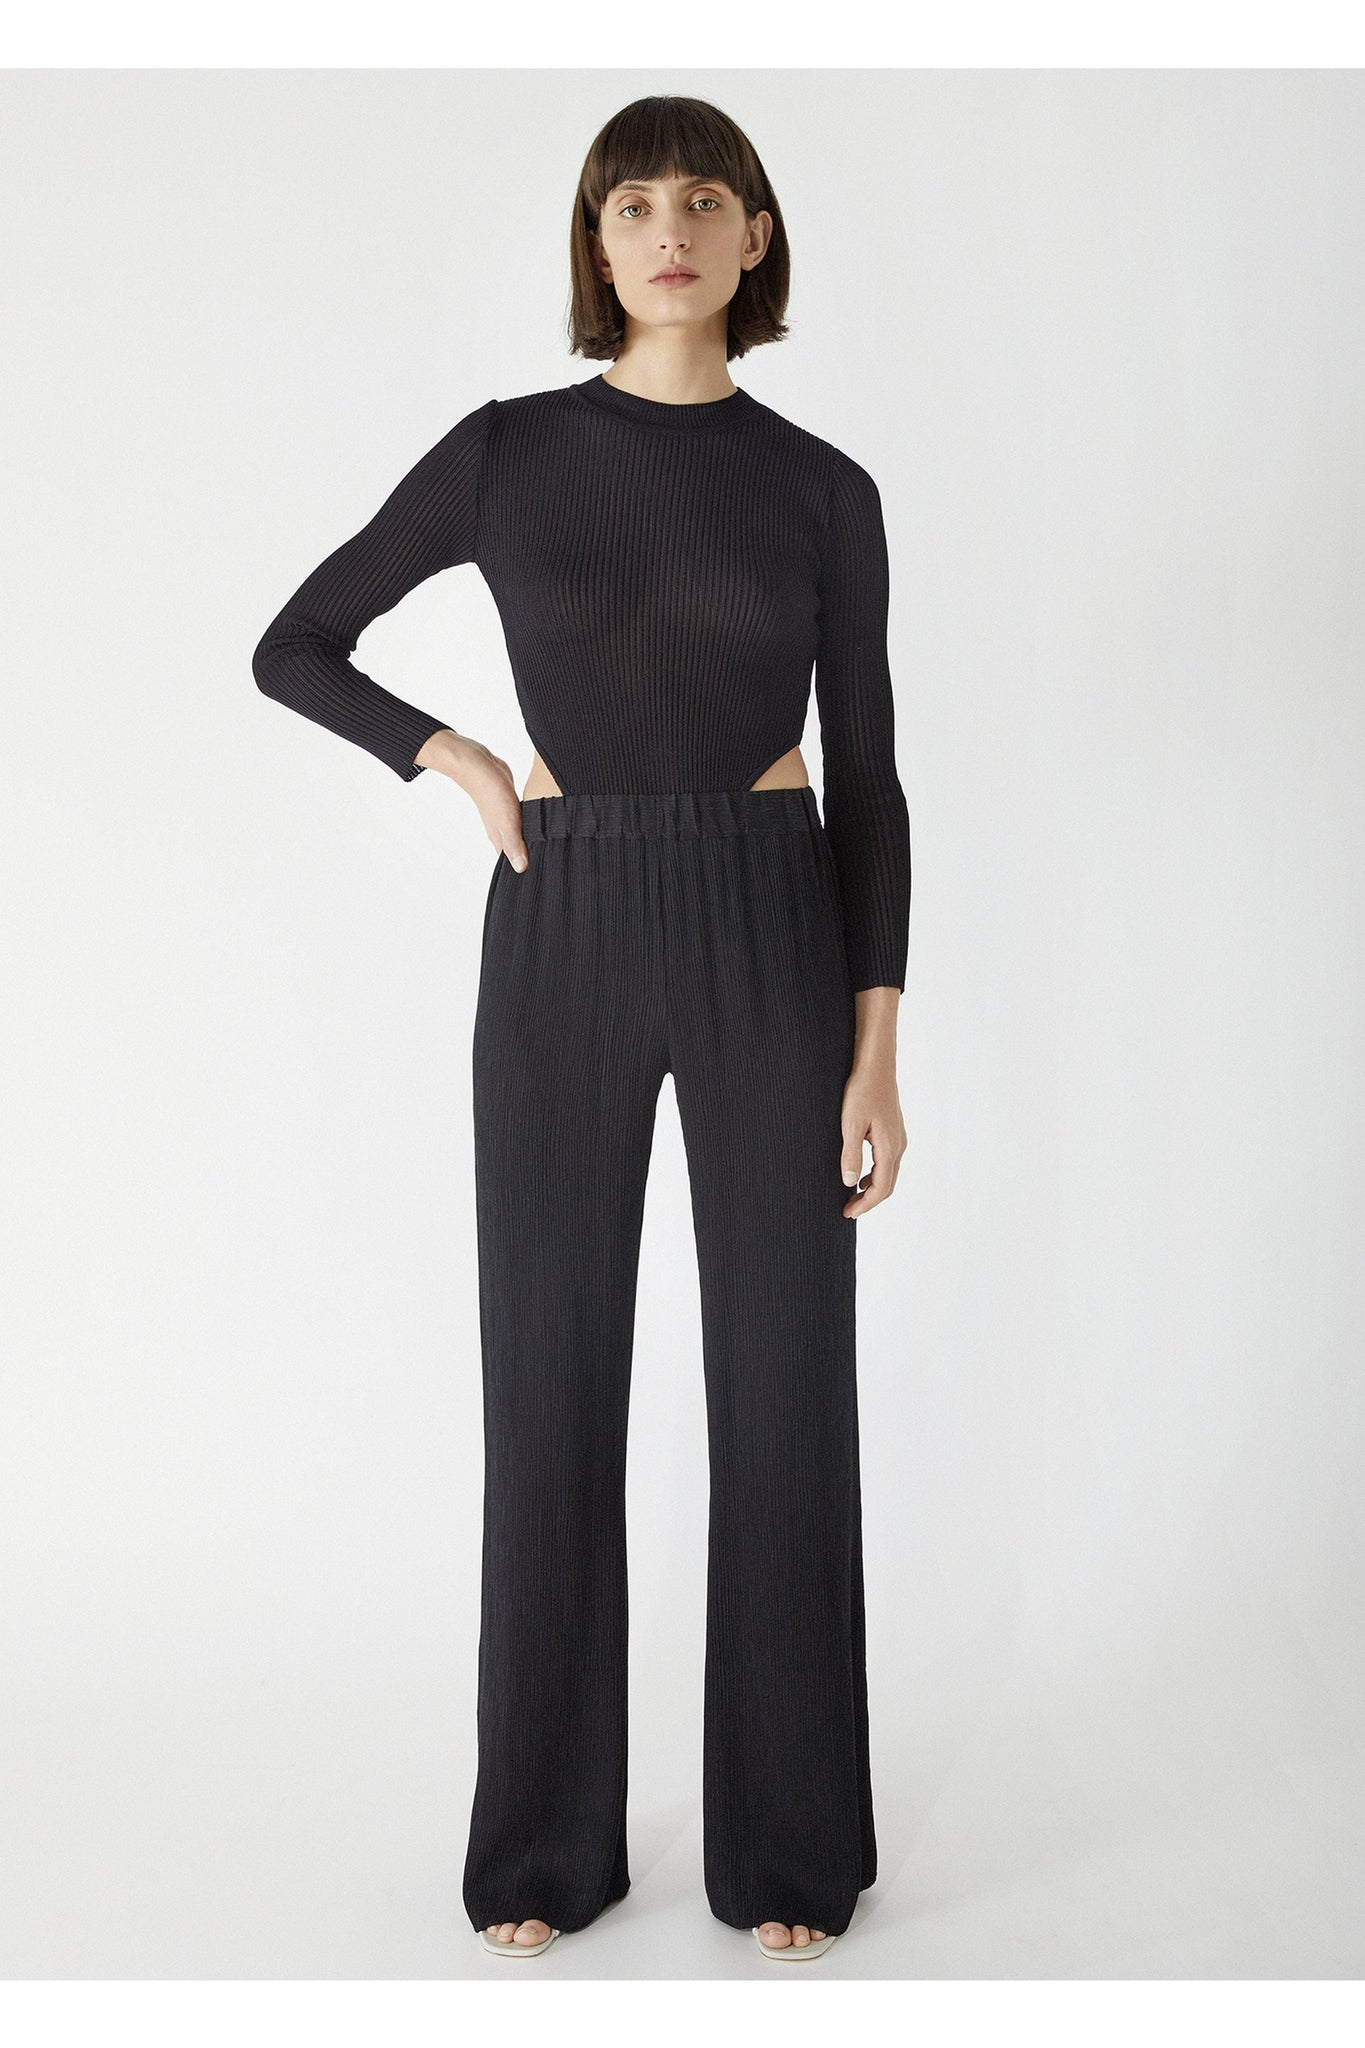 MARIETTA PLEATED CUPRO FLARED PANTS BLACK BY AERON - BEYOND STUDIOS